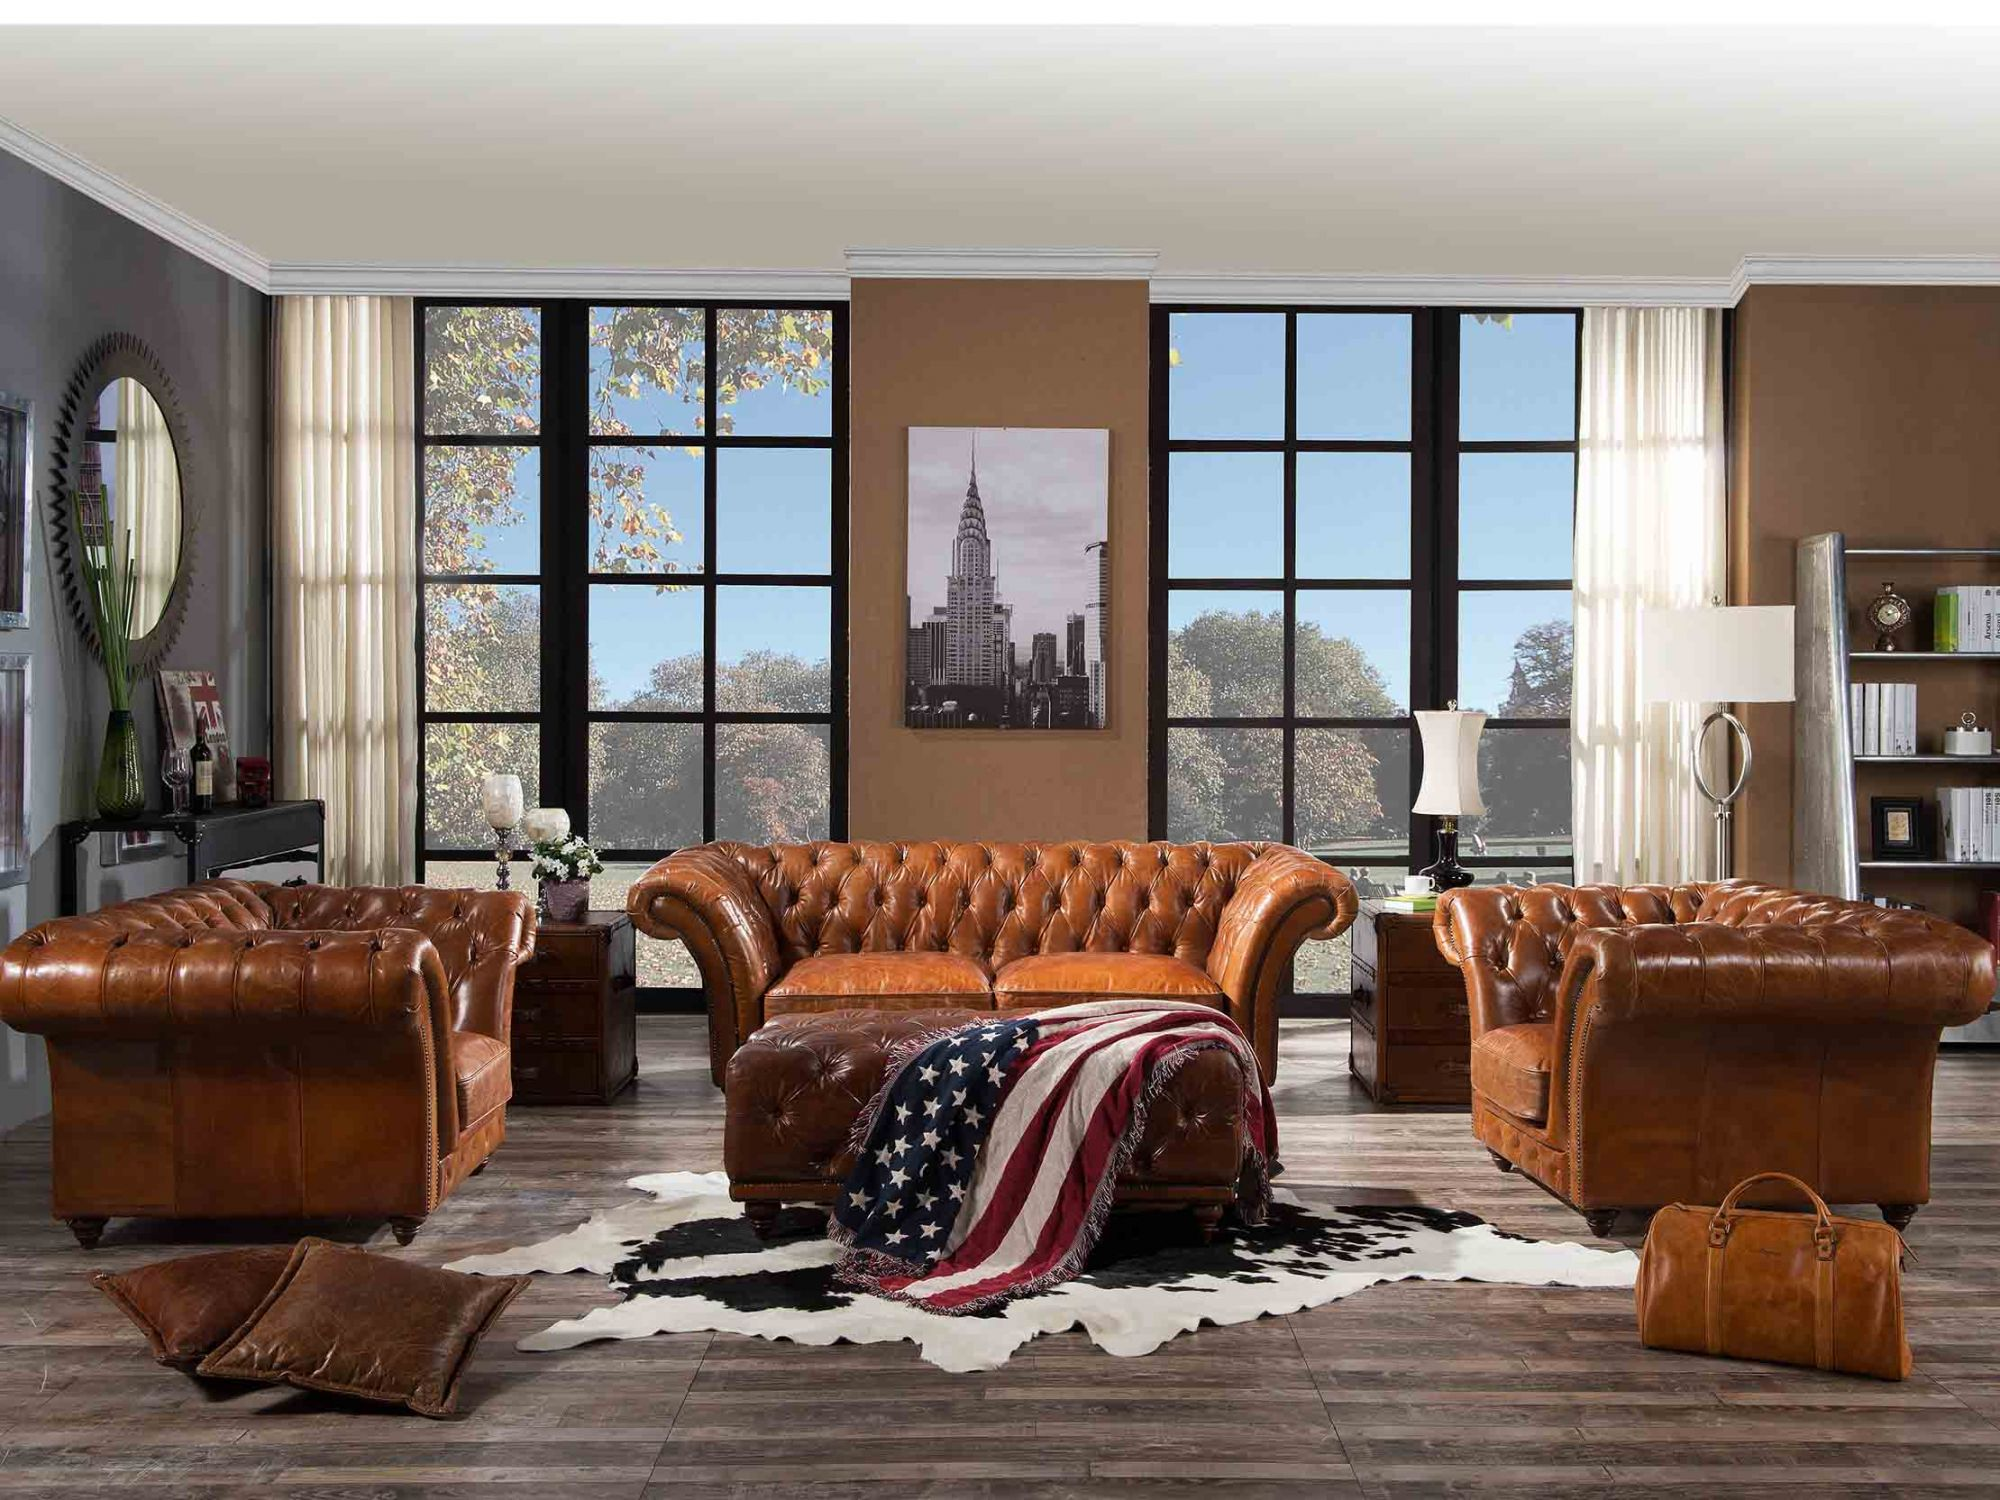 3S Vintage Leather Chesterfield Sofa